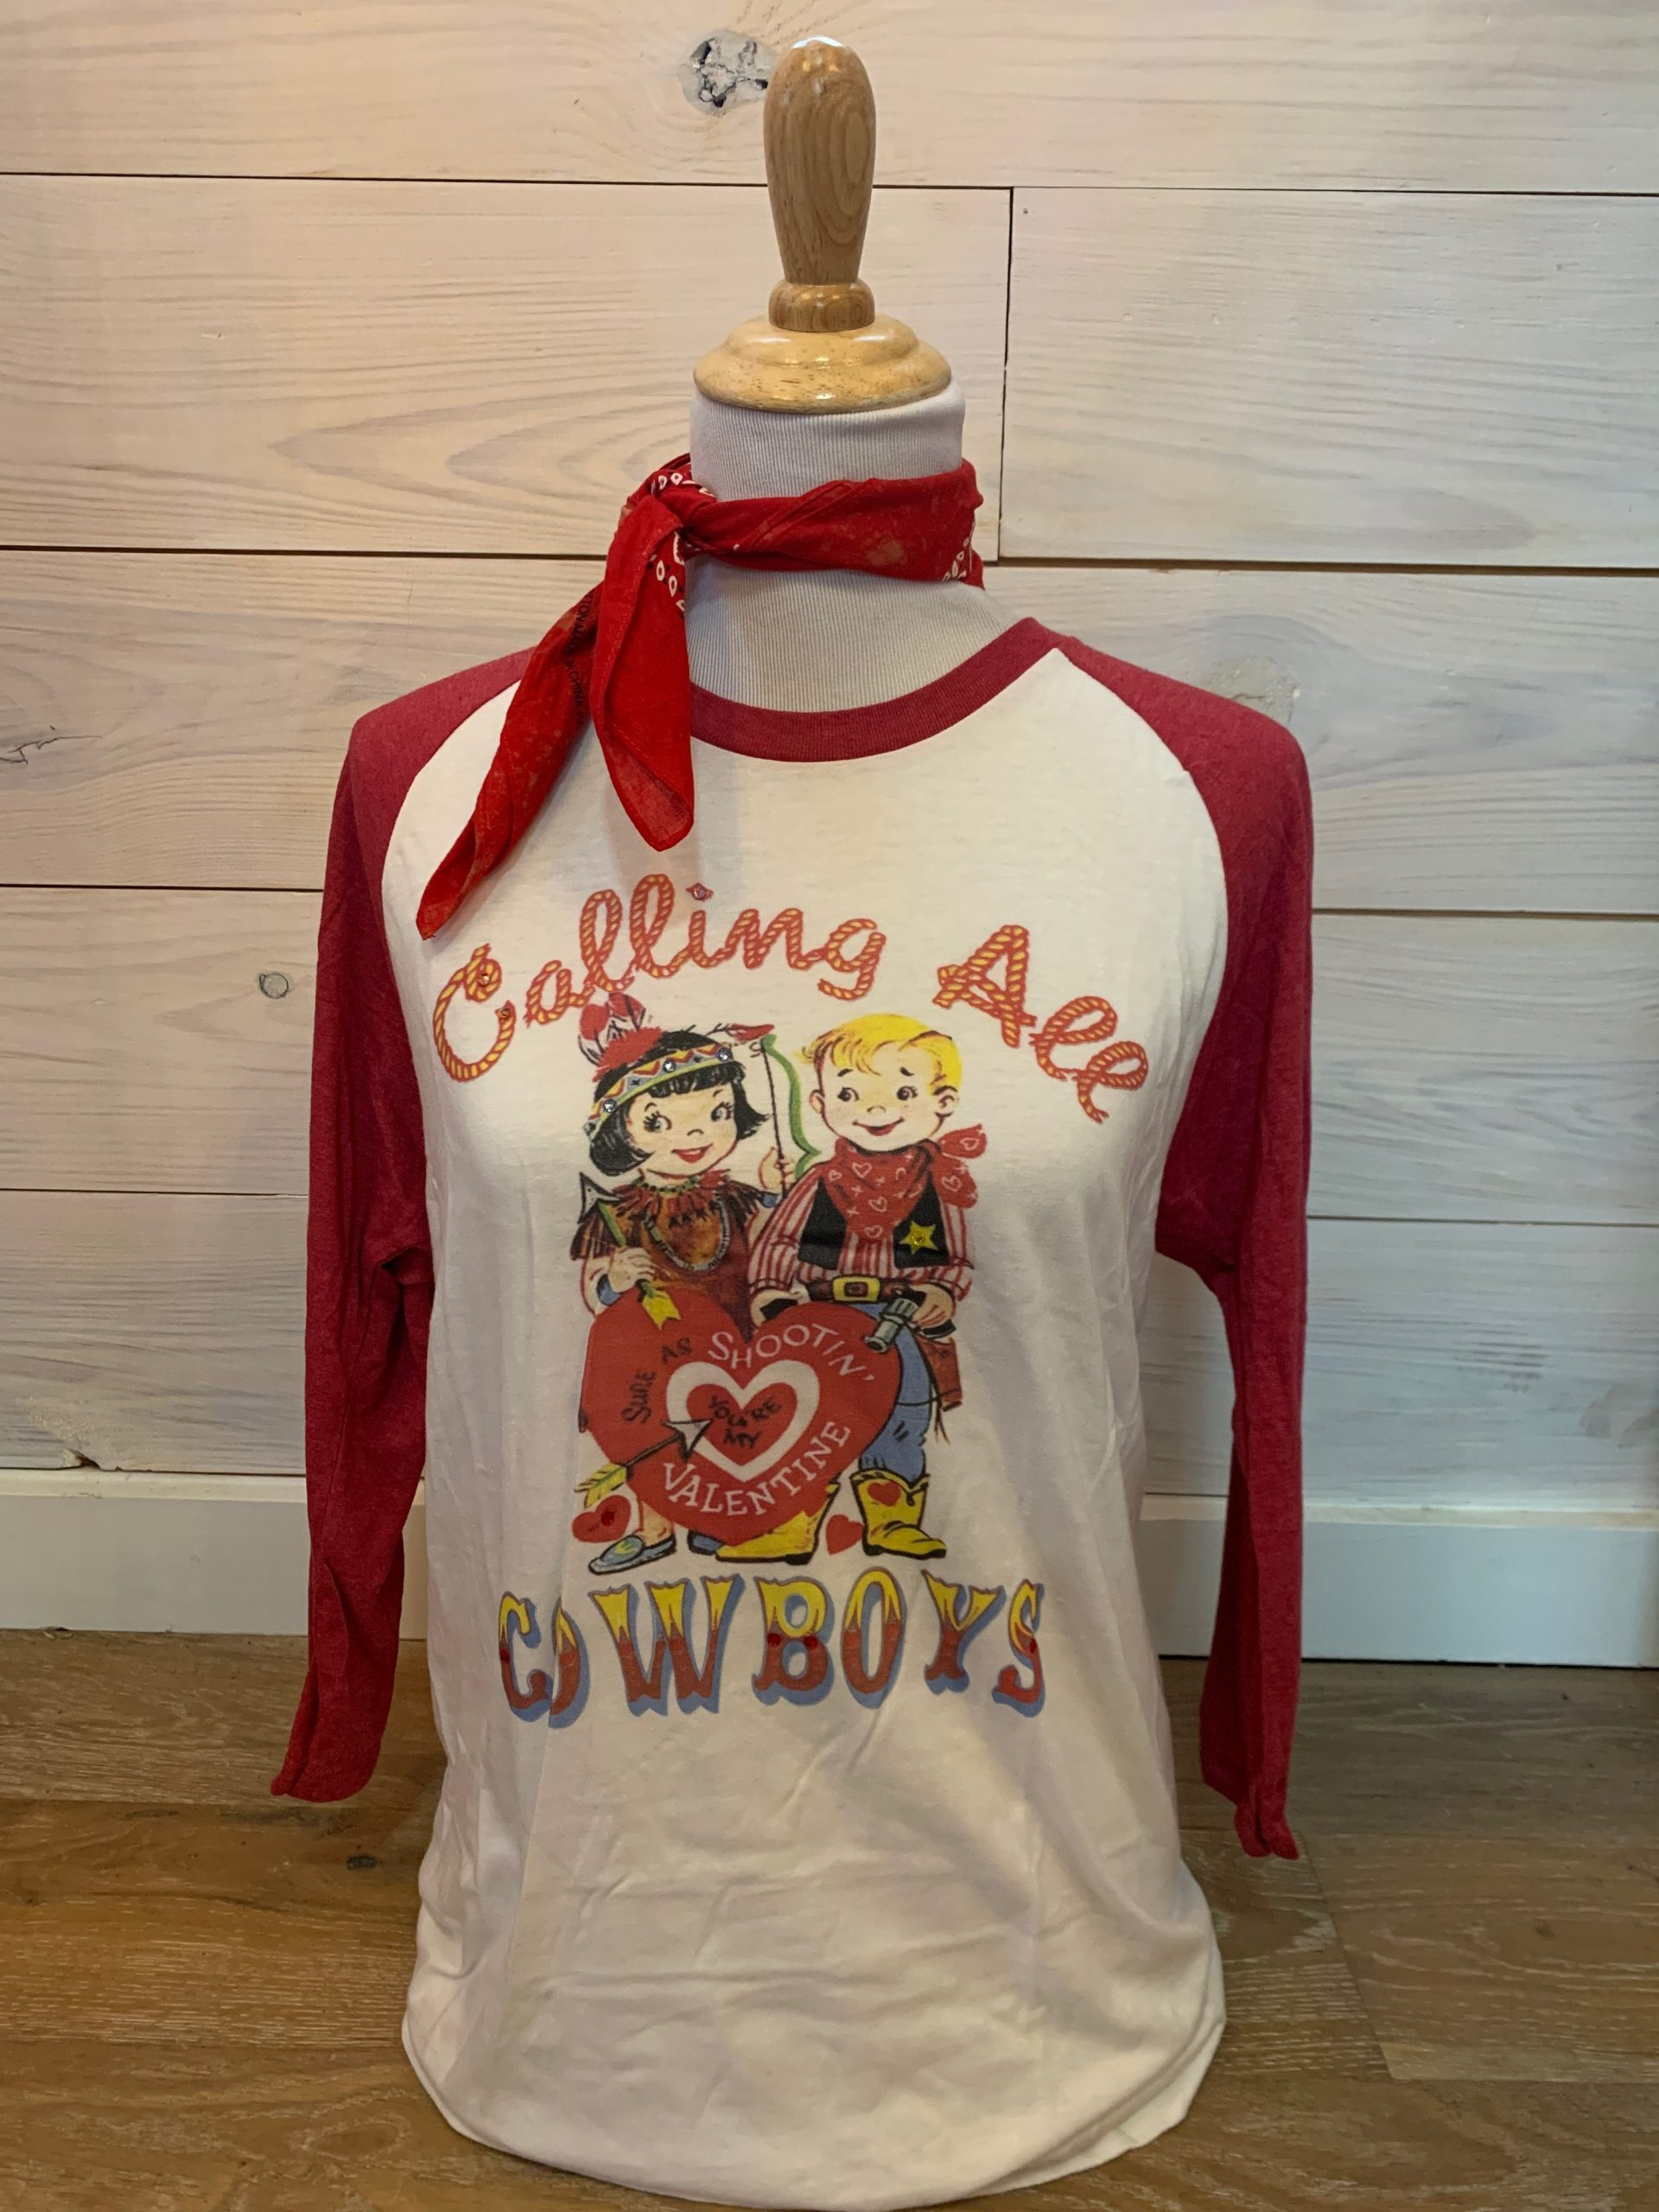 Calling All Cowboys on Heather Red White Baseball Tee